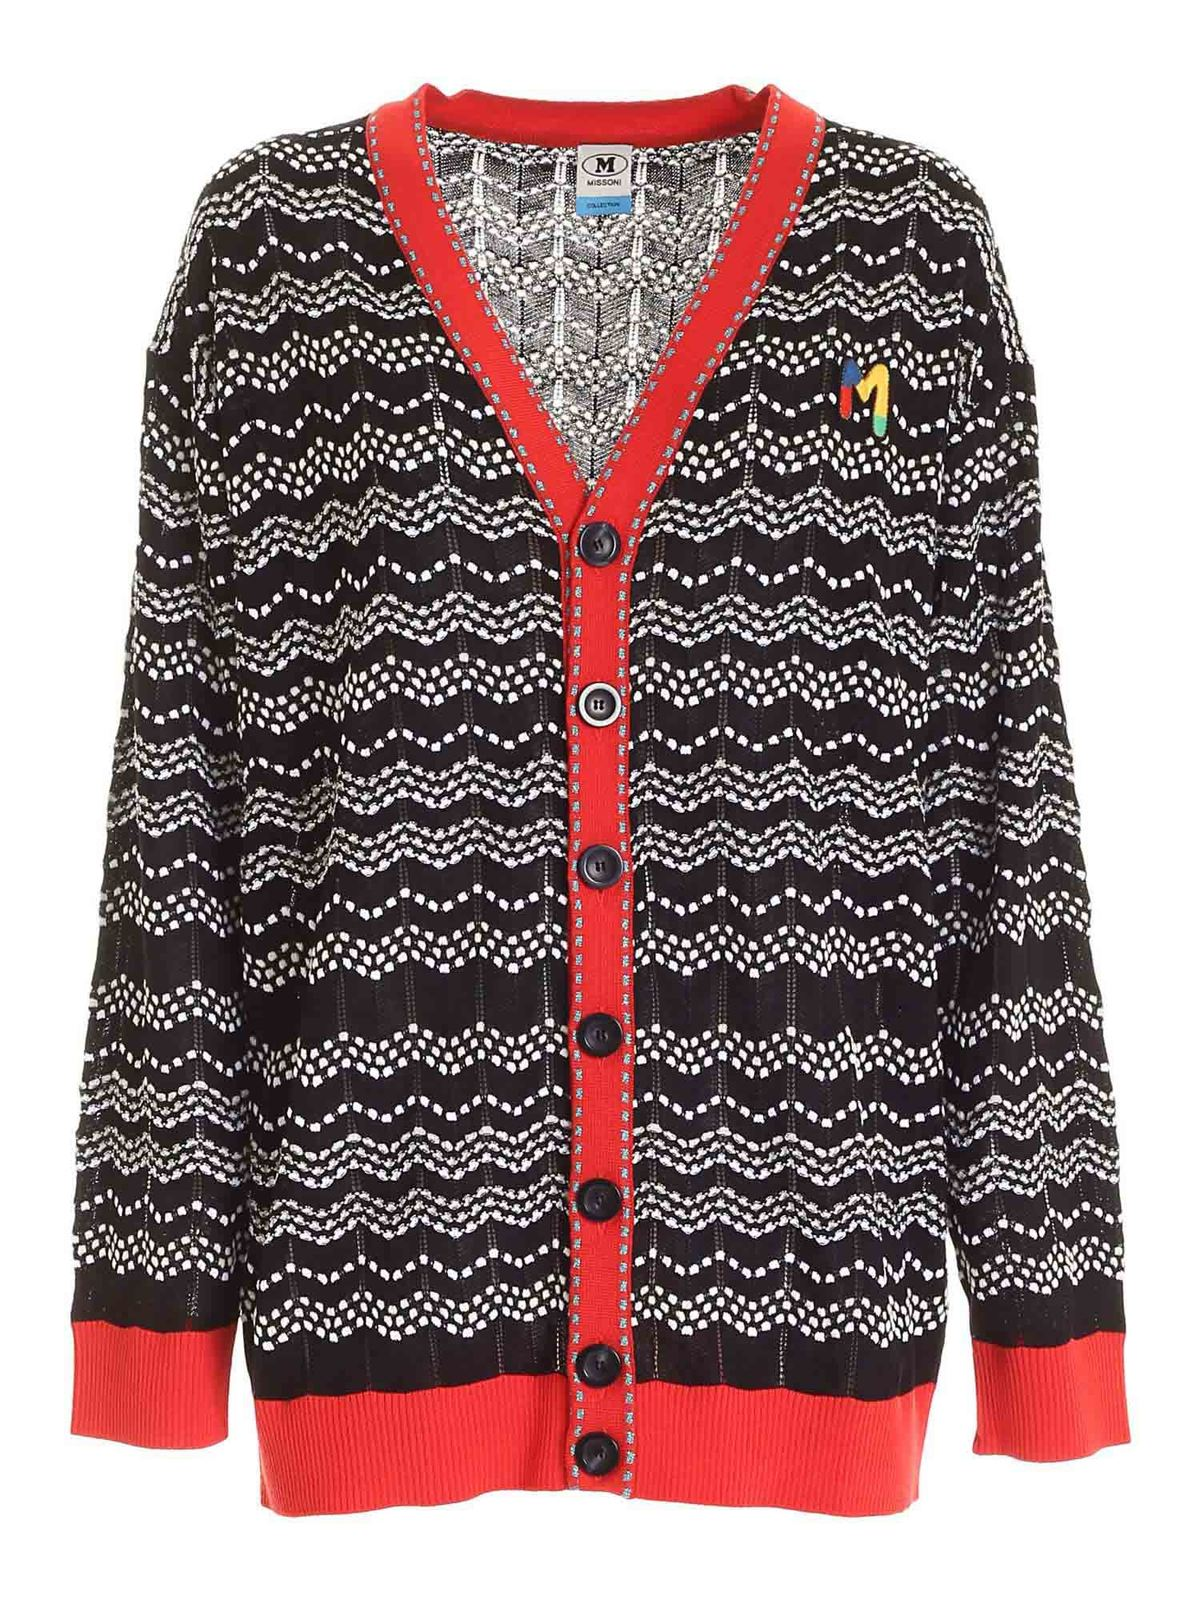 M Missoni LOGO PATCH CARDIGAN IN BLACK AND WHITE